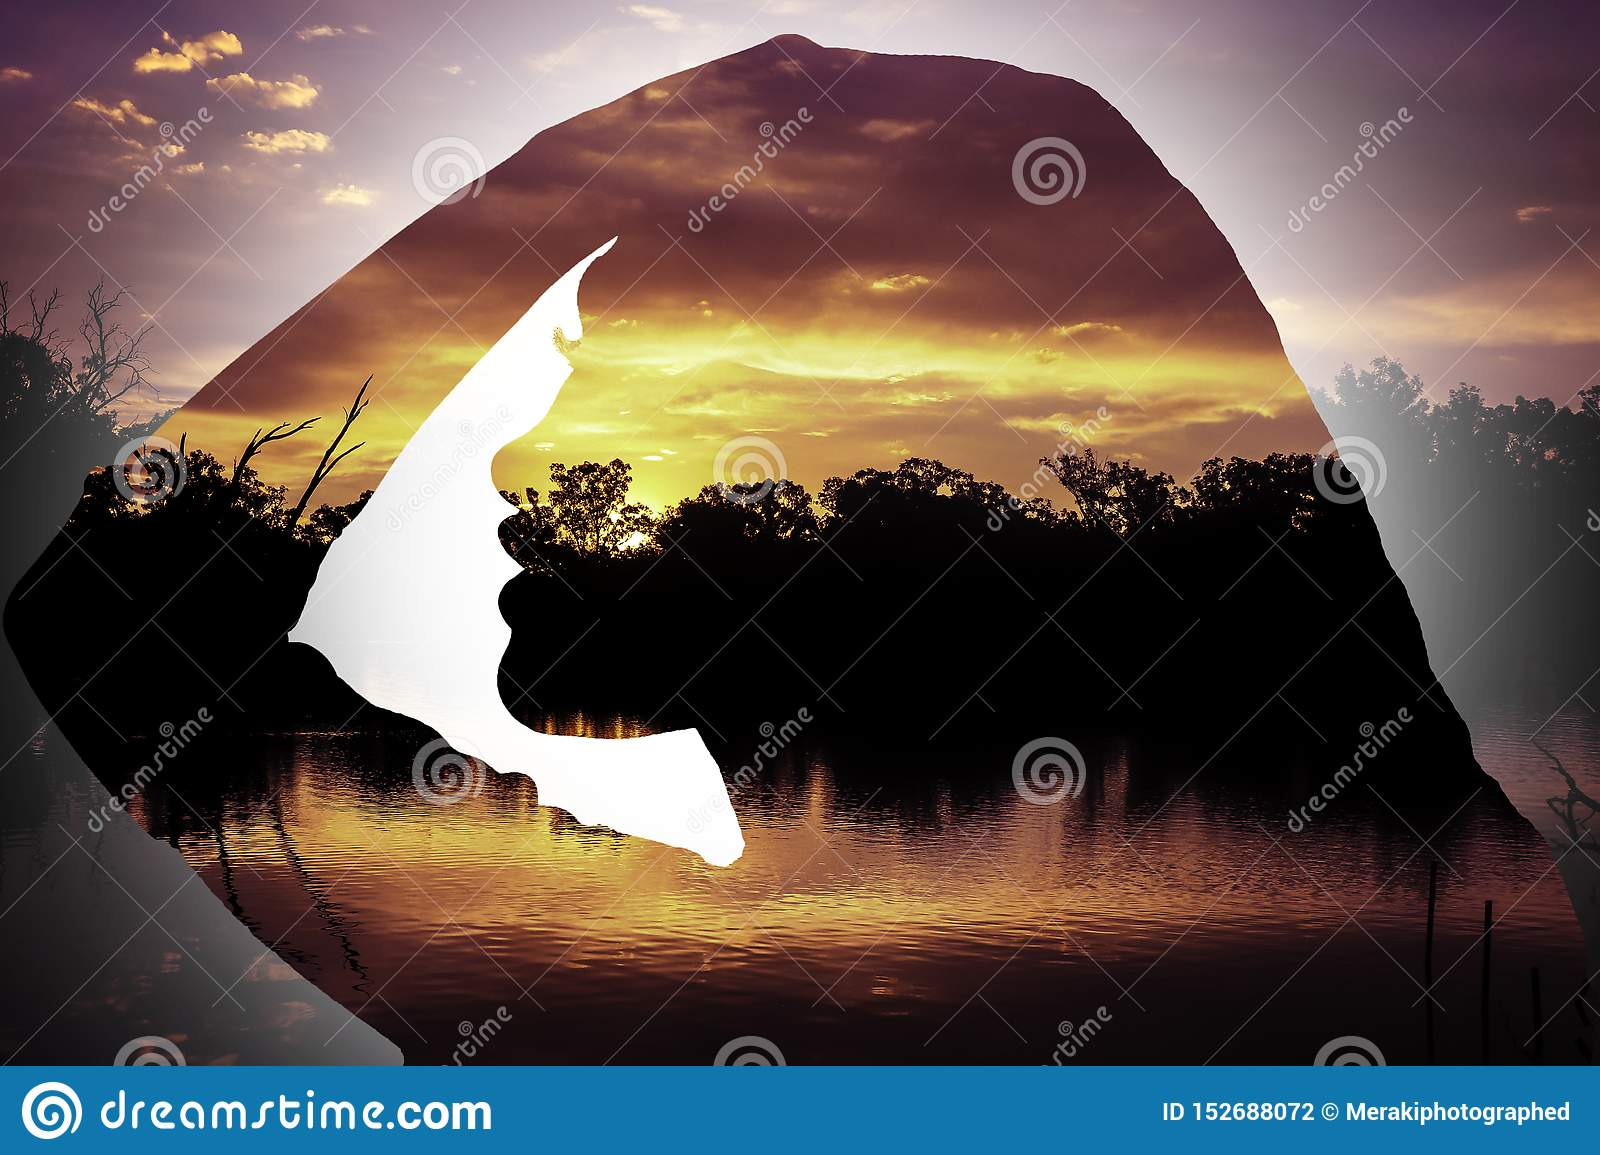 Sunset Silhouette of young girl side profile